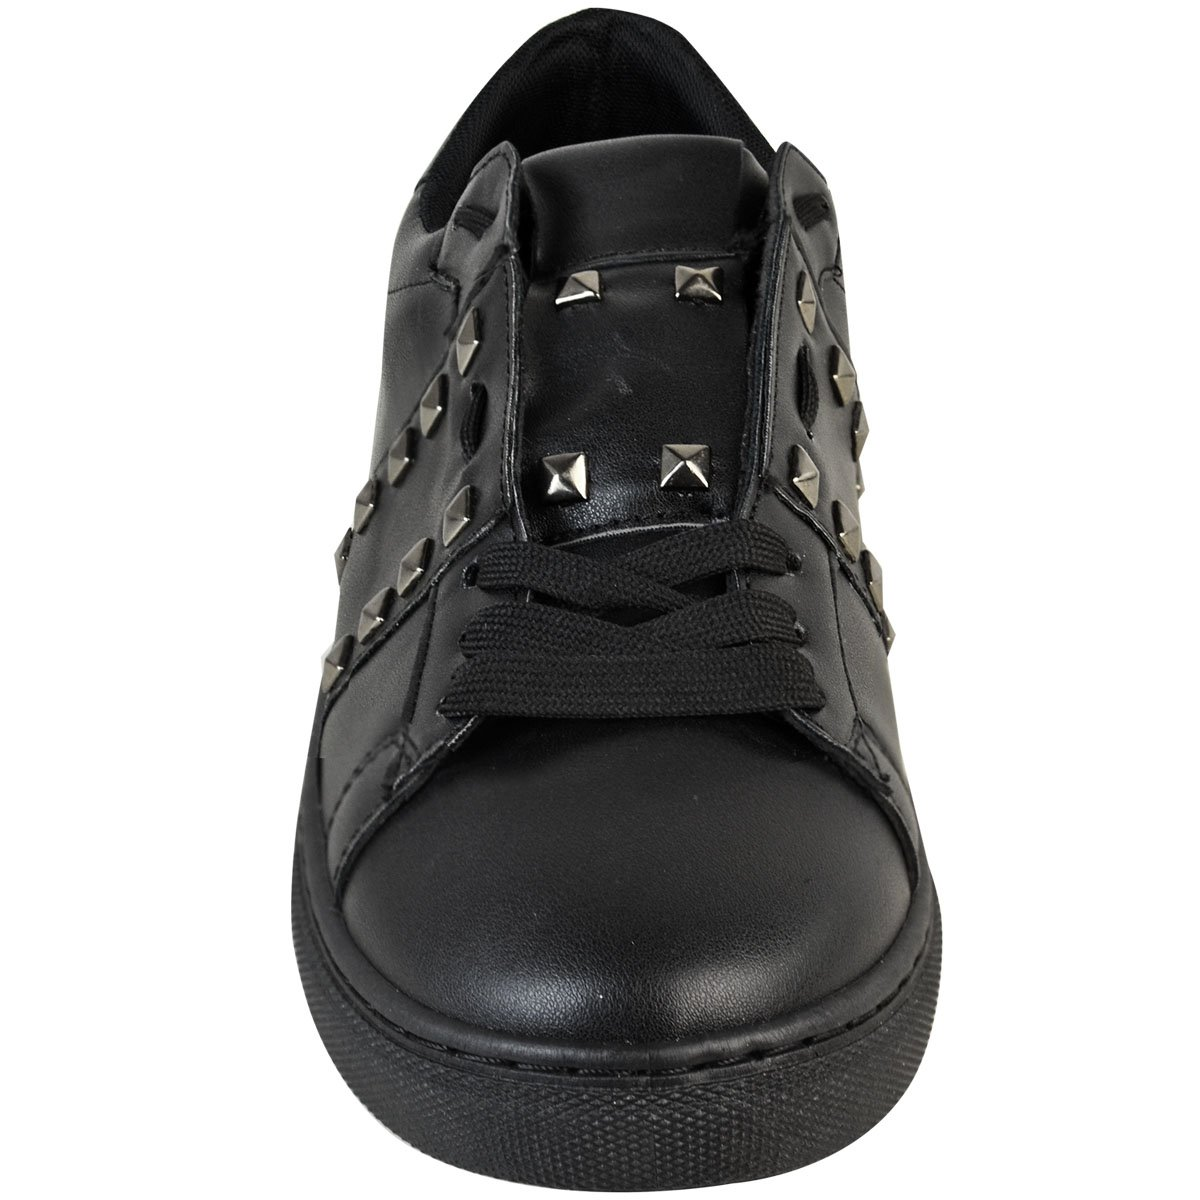 Fashion Thirsty Womens Sneakers Studded Fashion Designer Inspired Rock Size